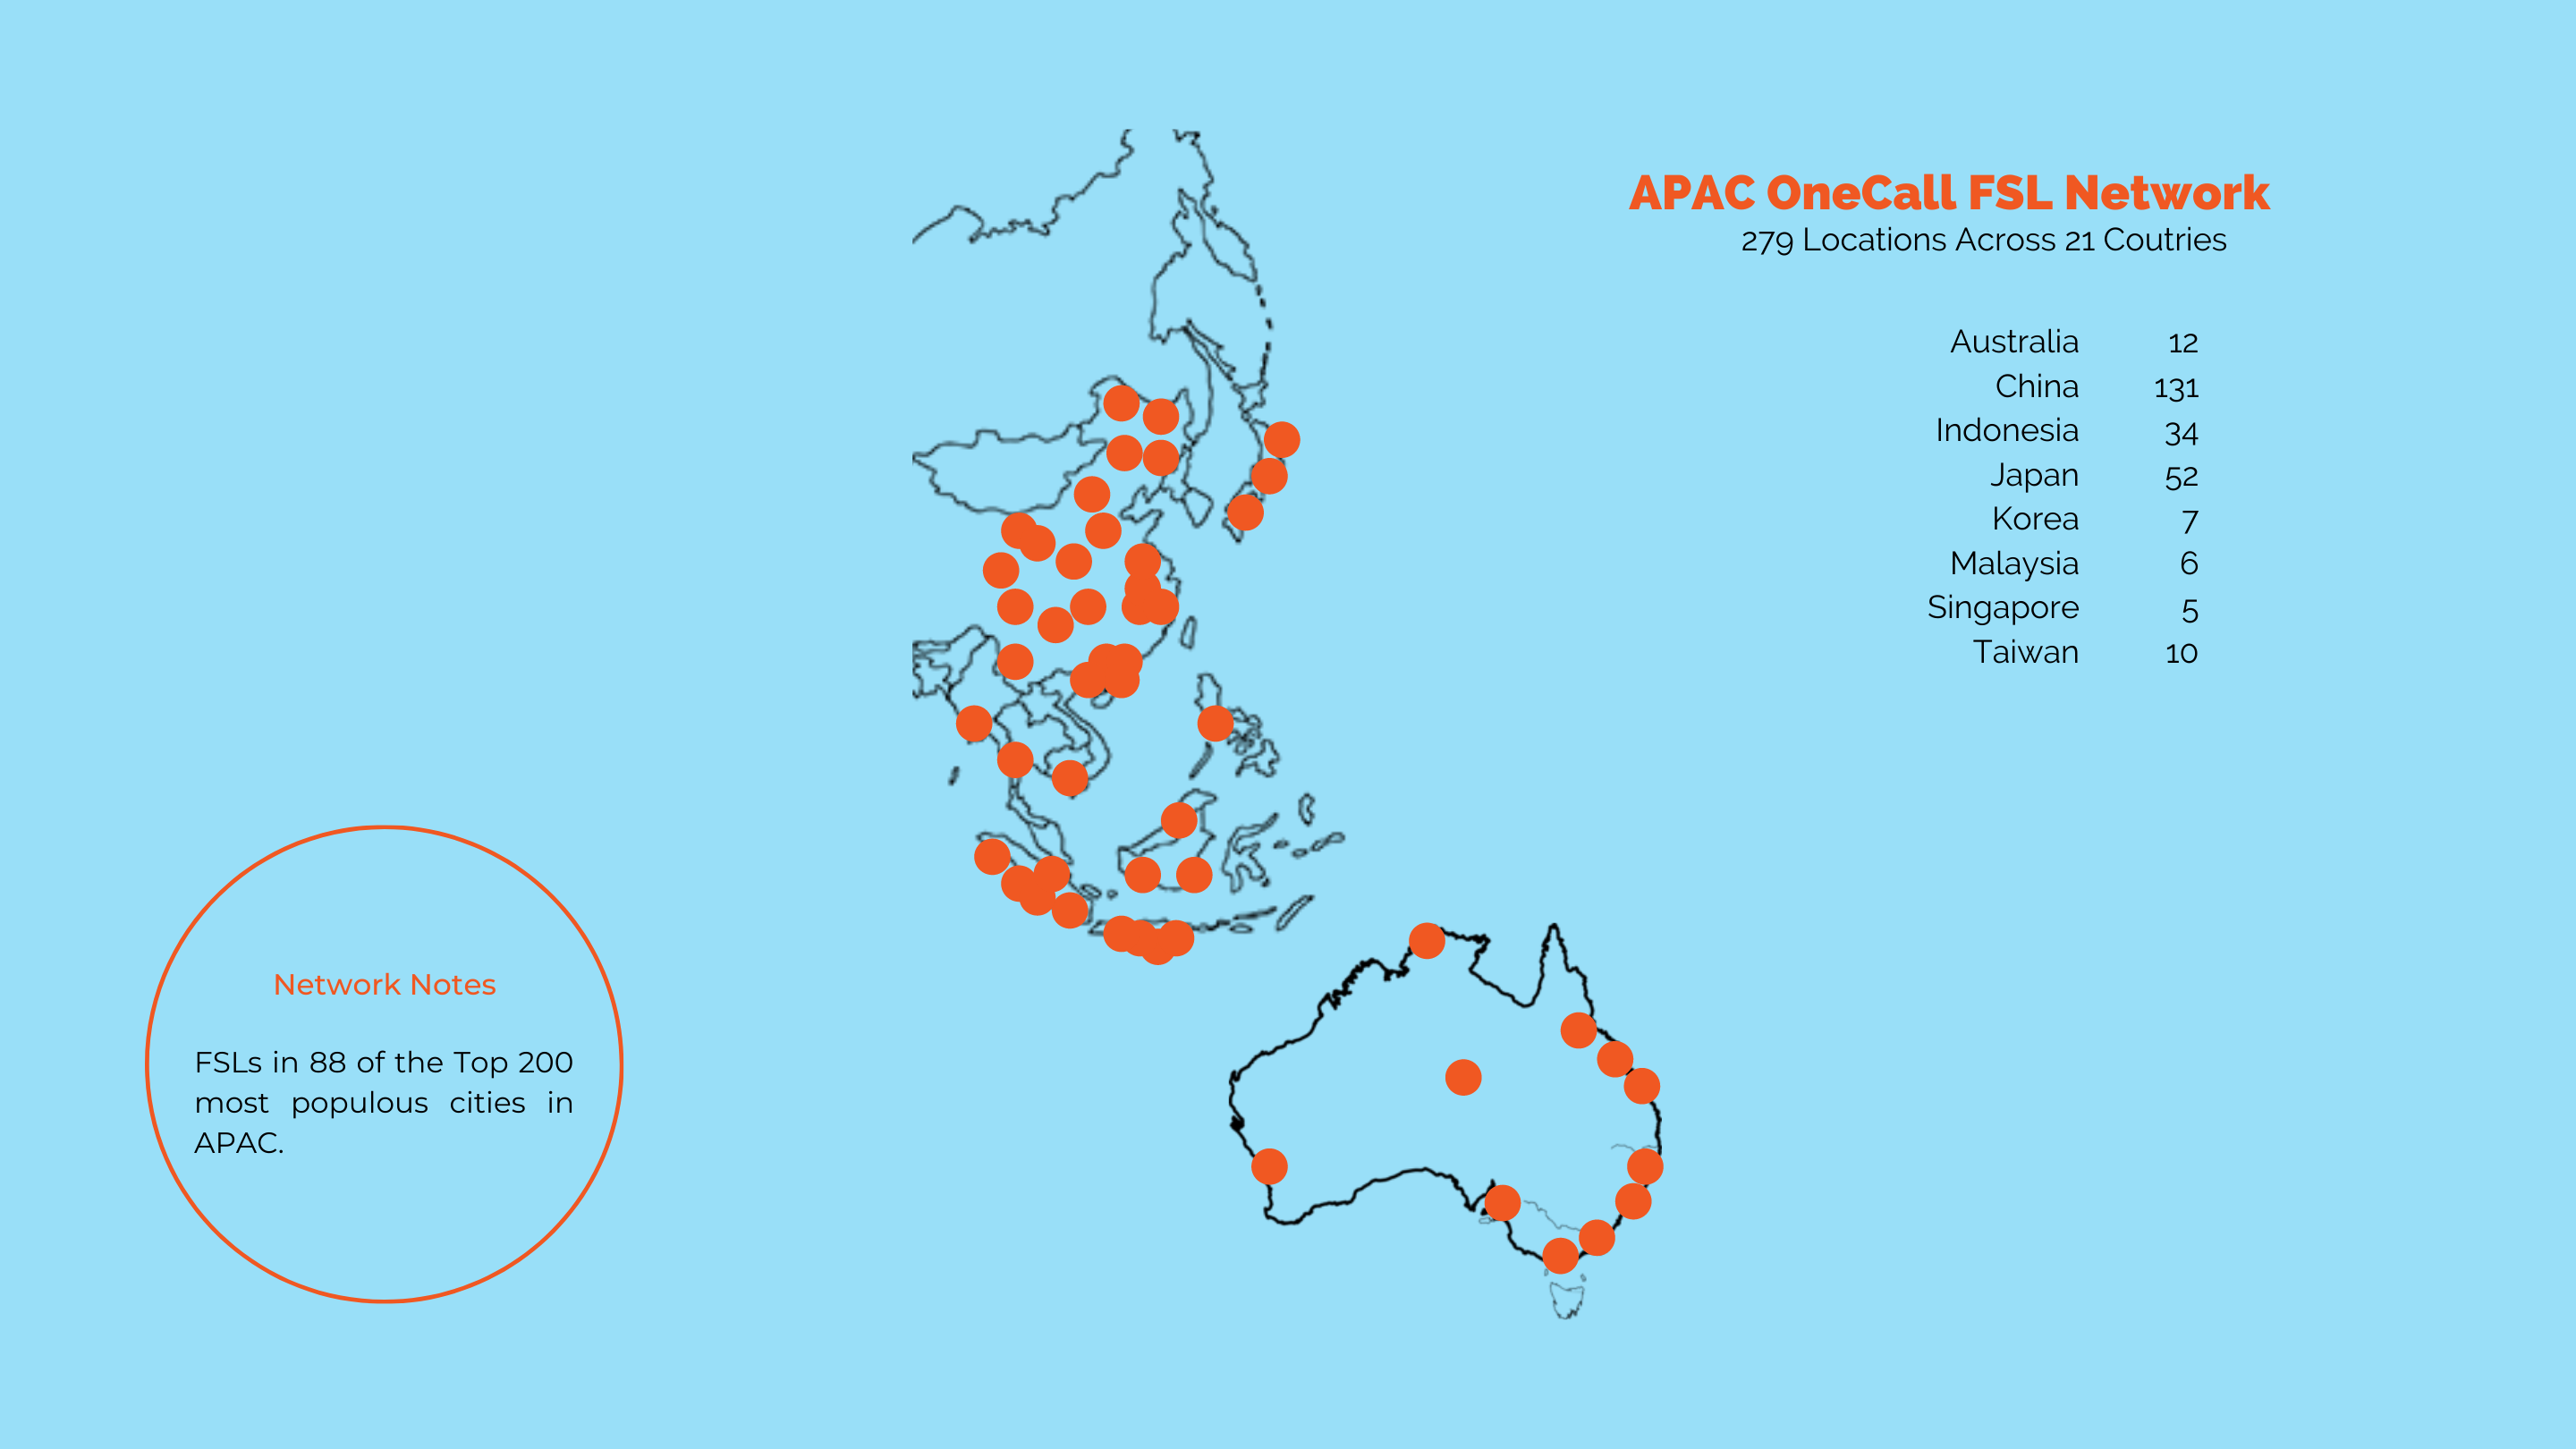 apac-onecall-coverage-blue